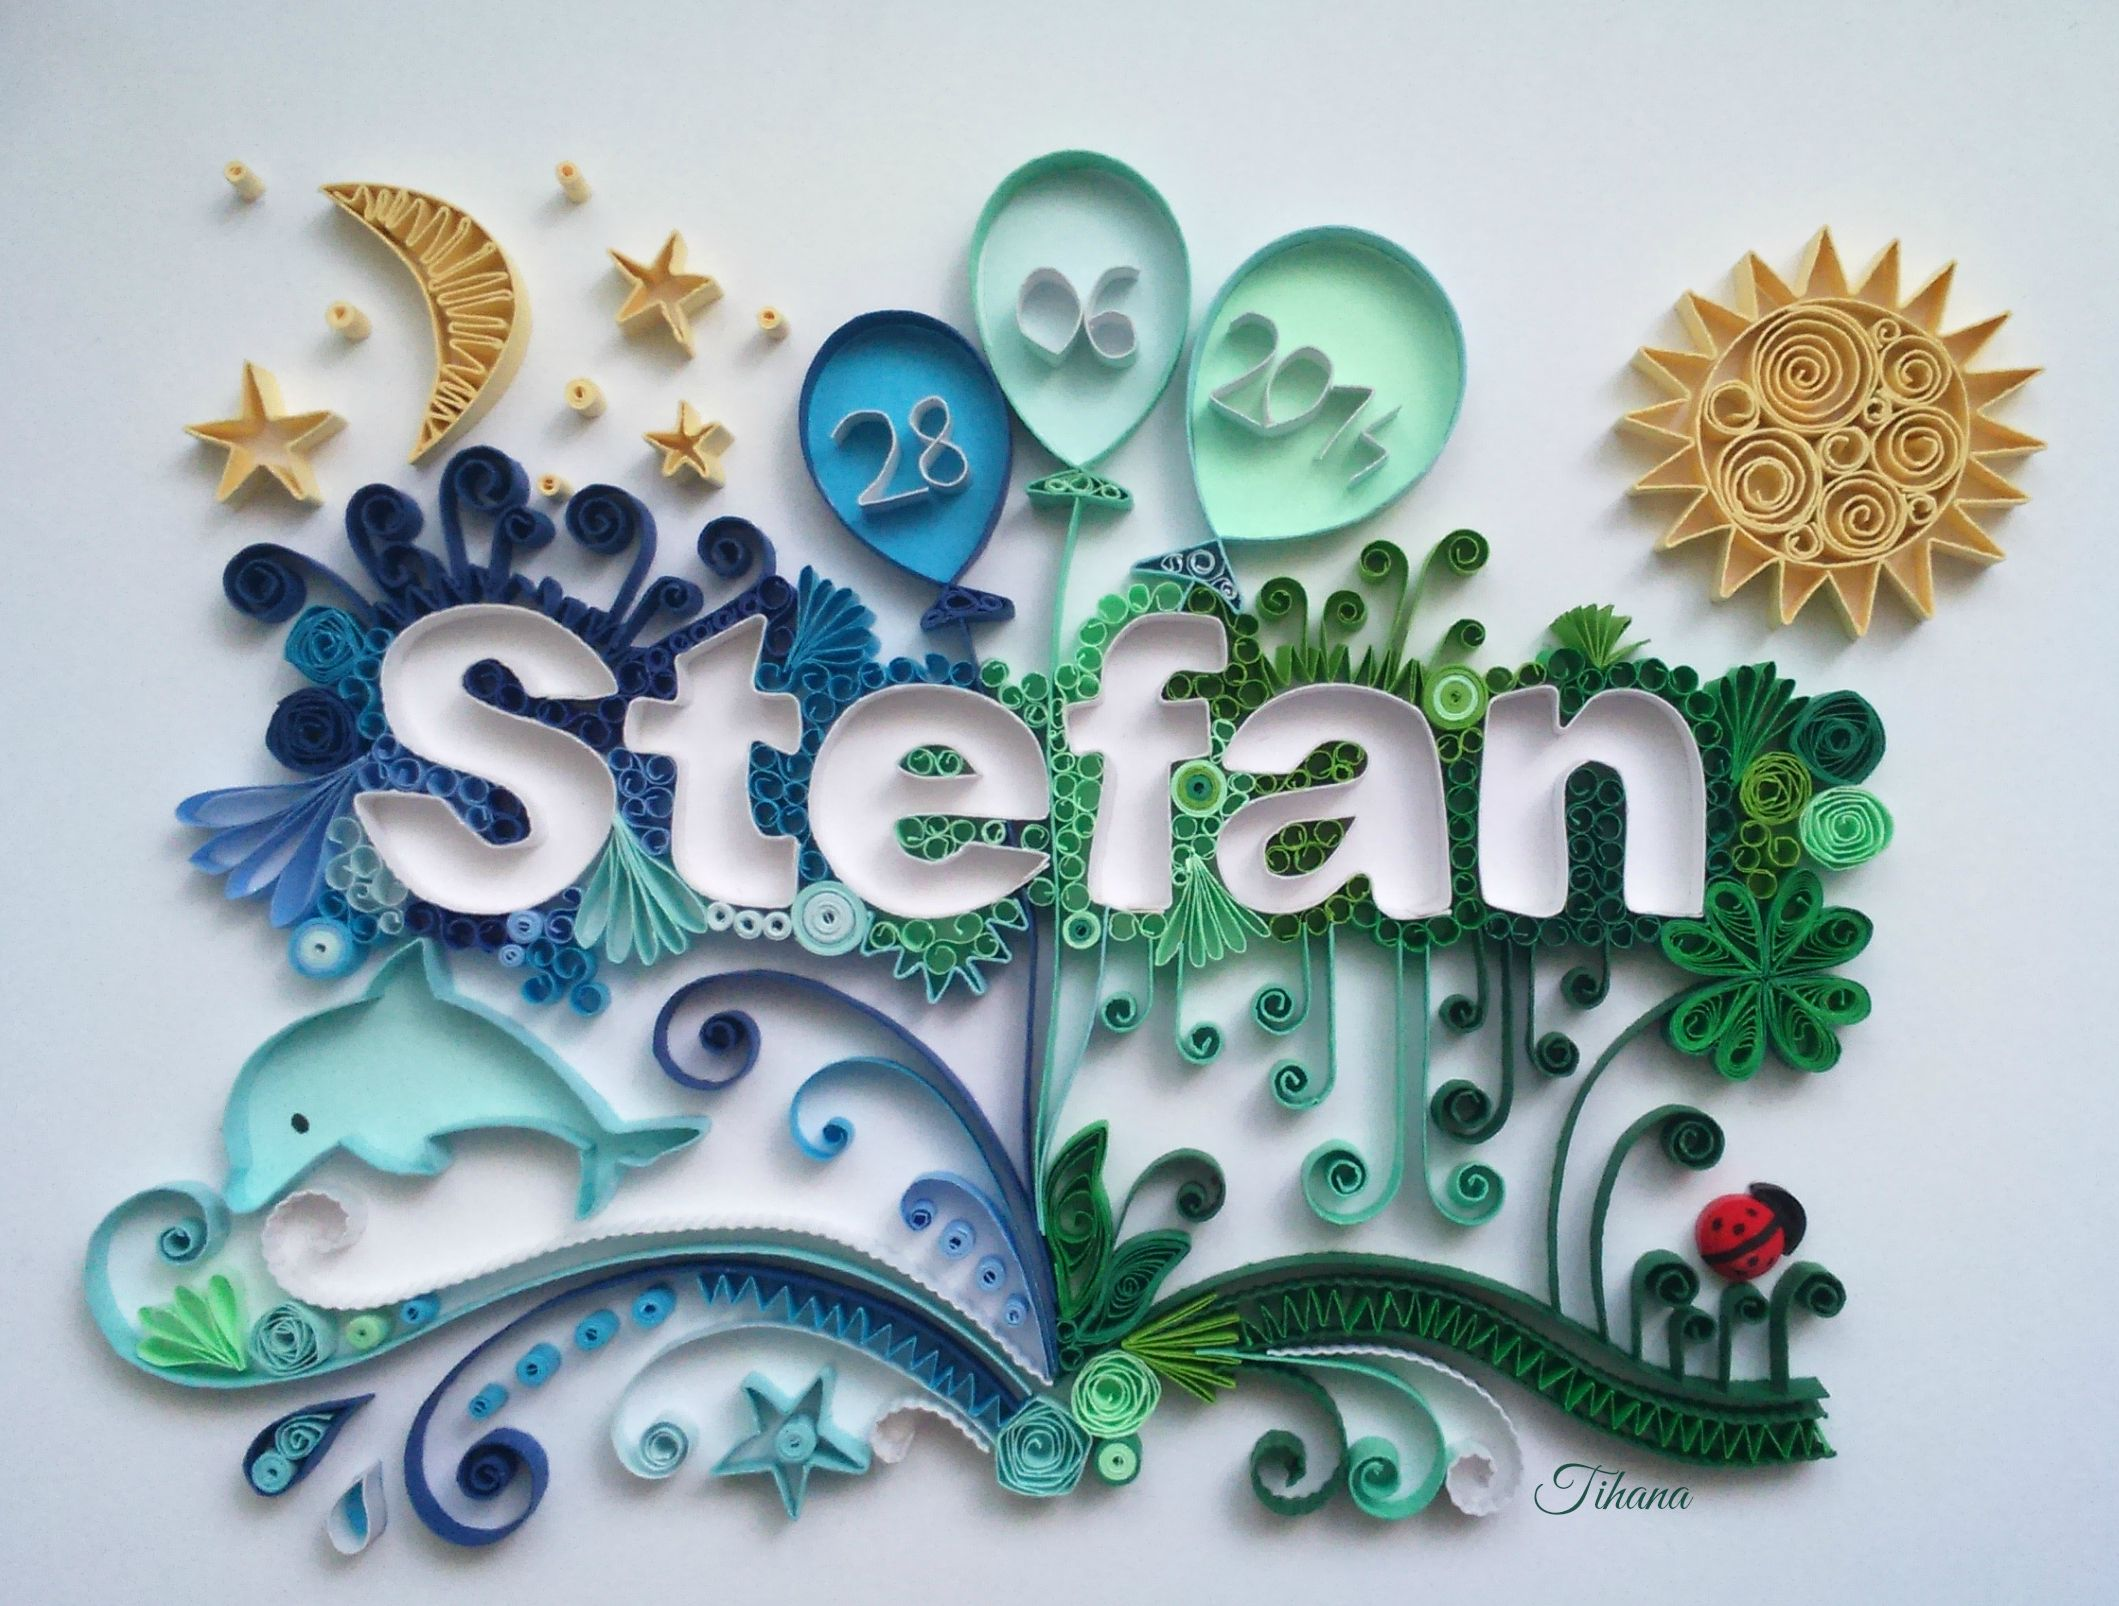 Quilled name Stefan, quilling moon, quilling sun, quilling ladybug ...